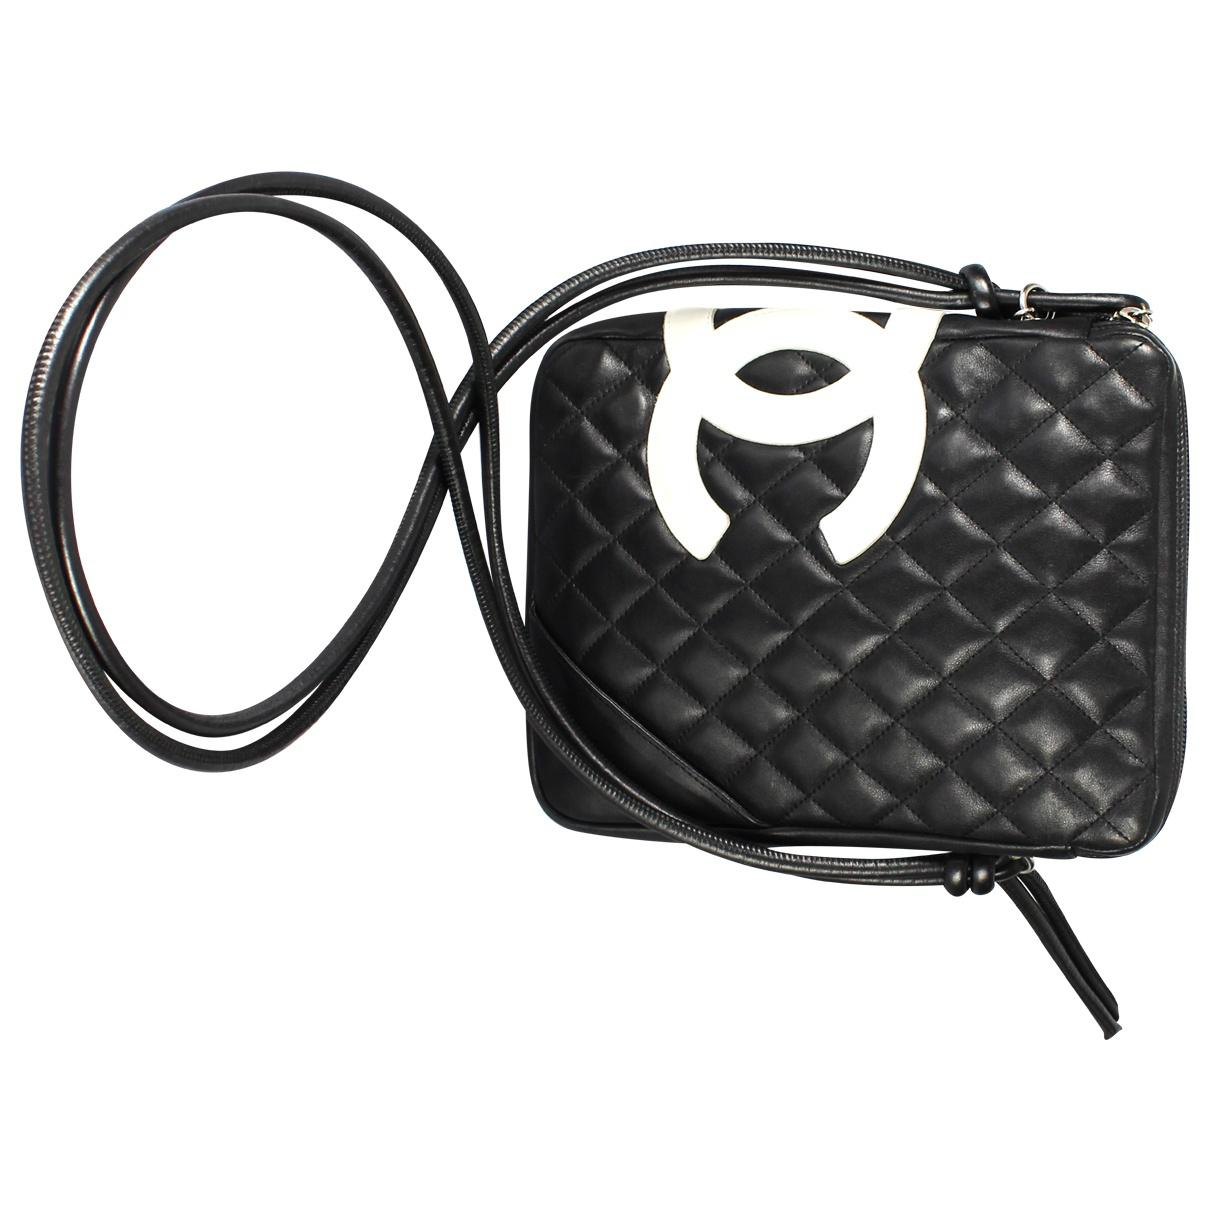 449feafba0c4 Lyst - Chanel Cambon Leather Crossbody Bag in Black